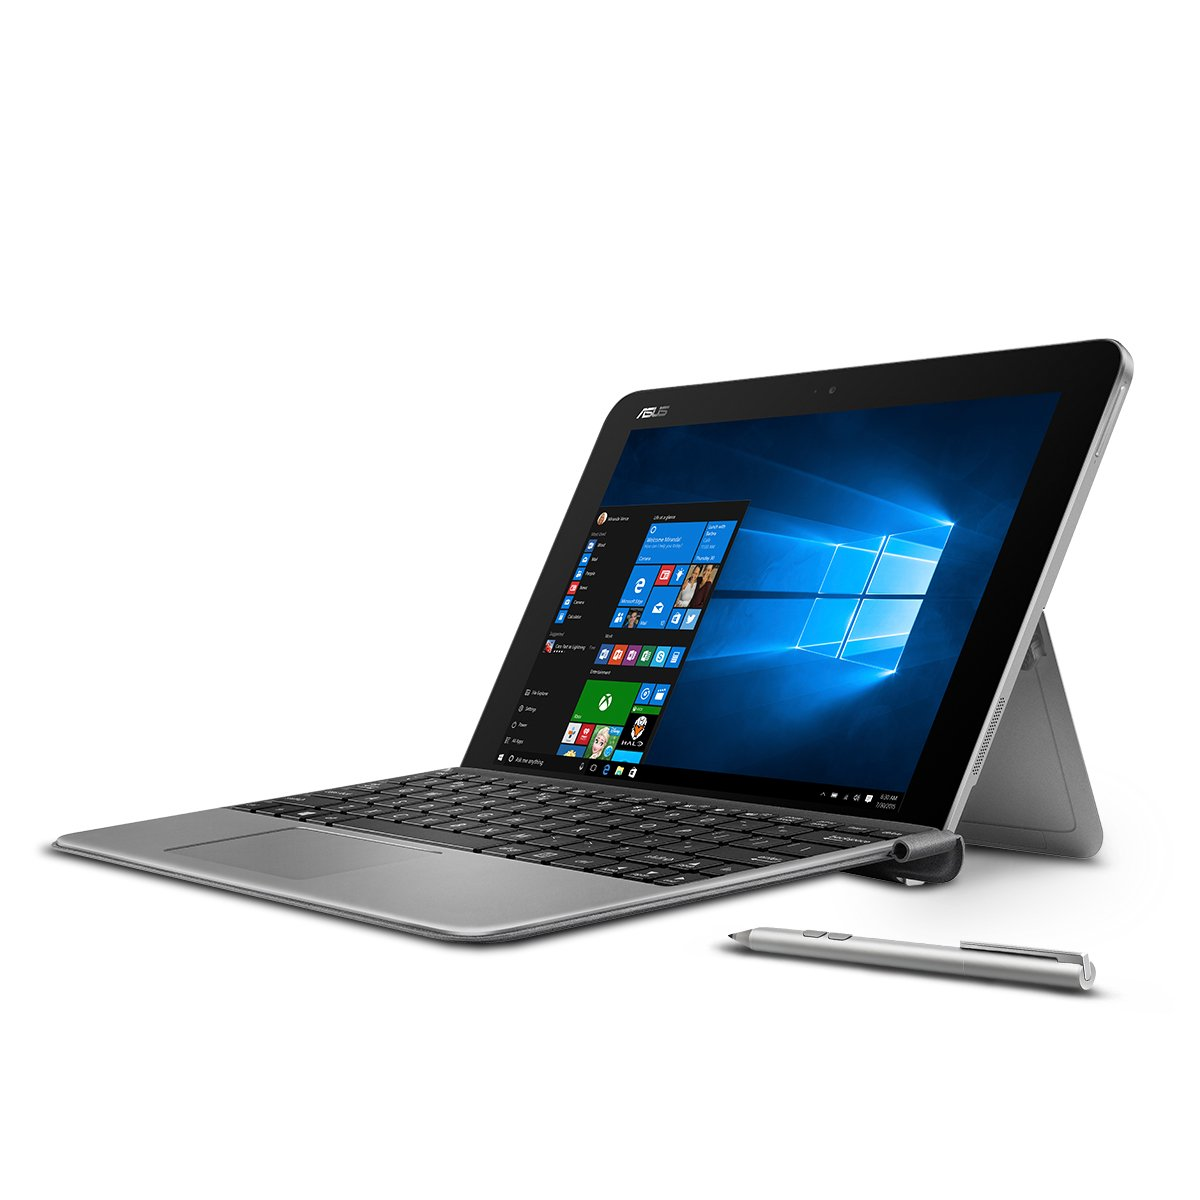 """ASUS 10.1"""" Transformer Mini T102HA-D4-GR, 2in1 Touchscreen Laptop, Intel Quad-Core Atom, 4GB RAM, 128GB EMMC, Pen and Keyboard Included"""